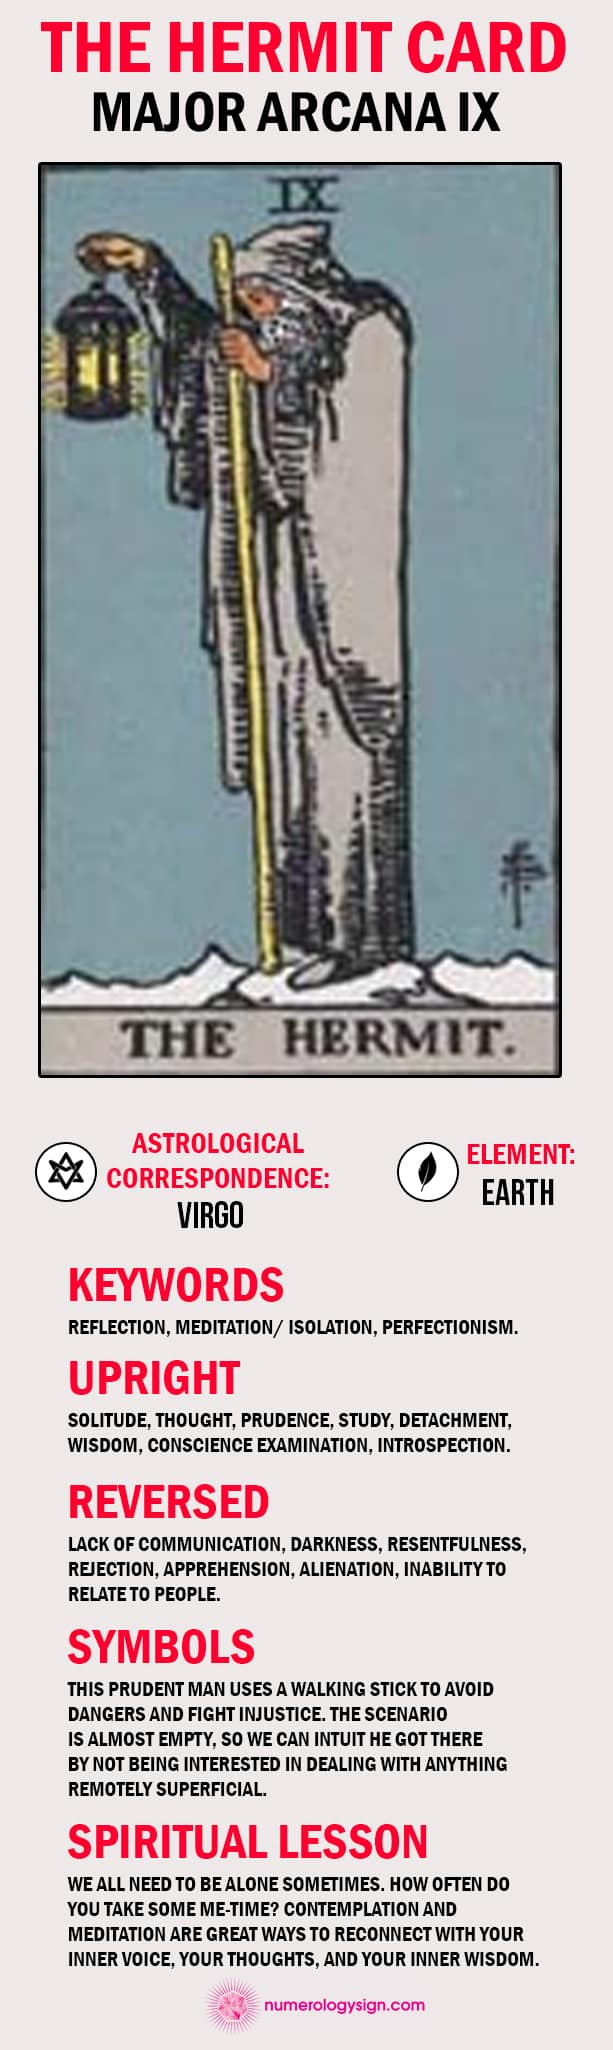 The Hermit Tarot Card Meanings